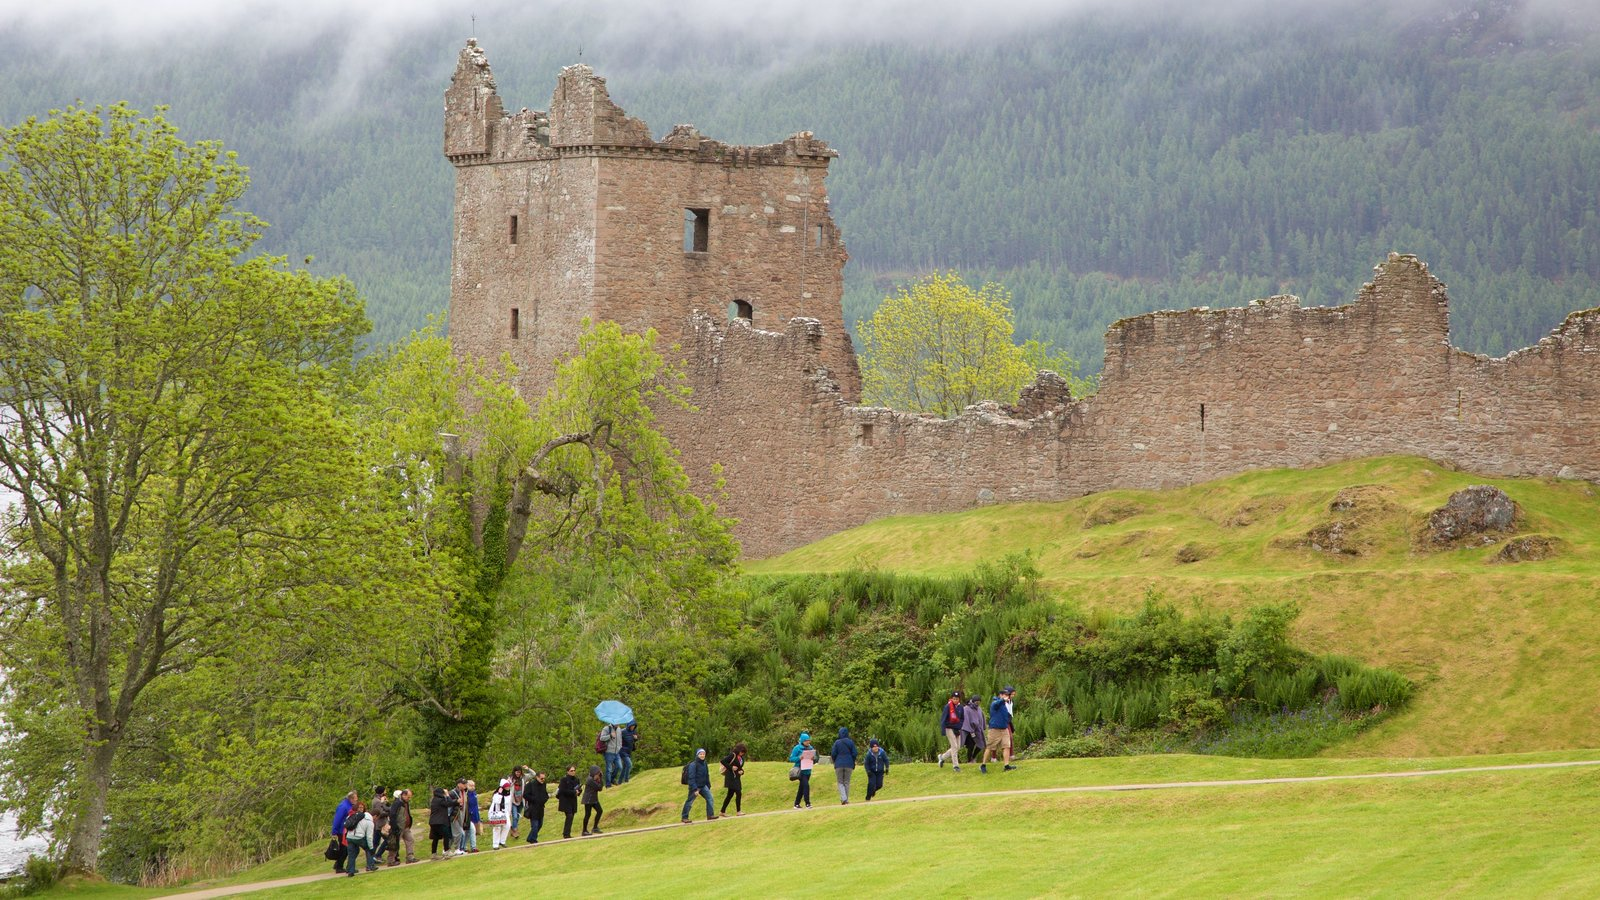 Urquhart Castle which includes chateau or palace, building ruins and heritage elements